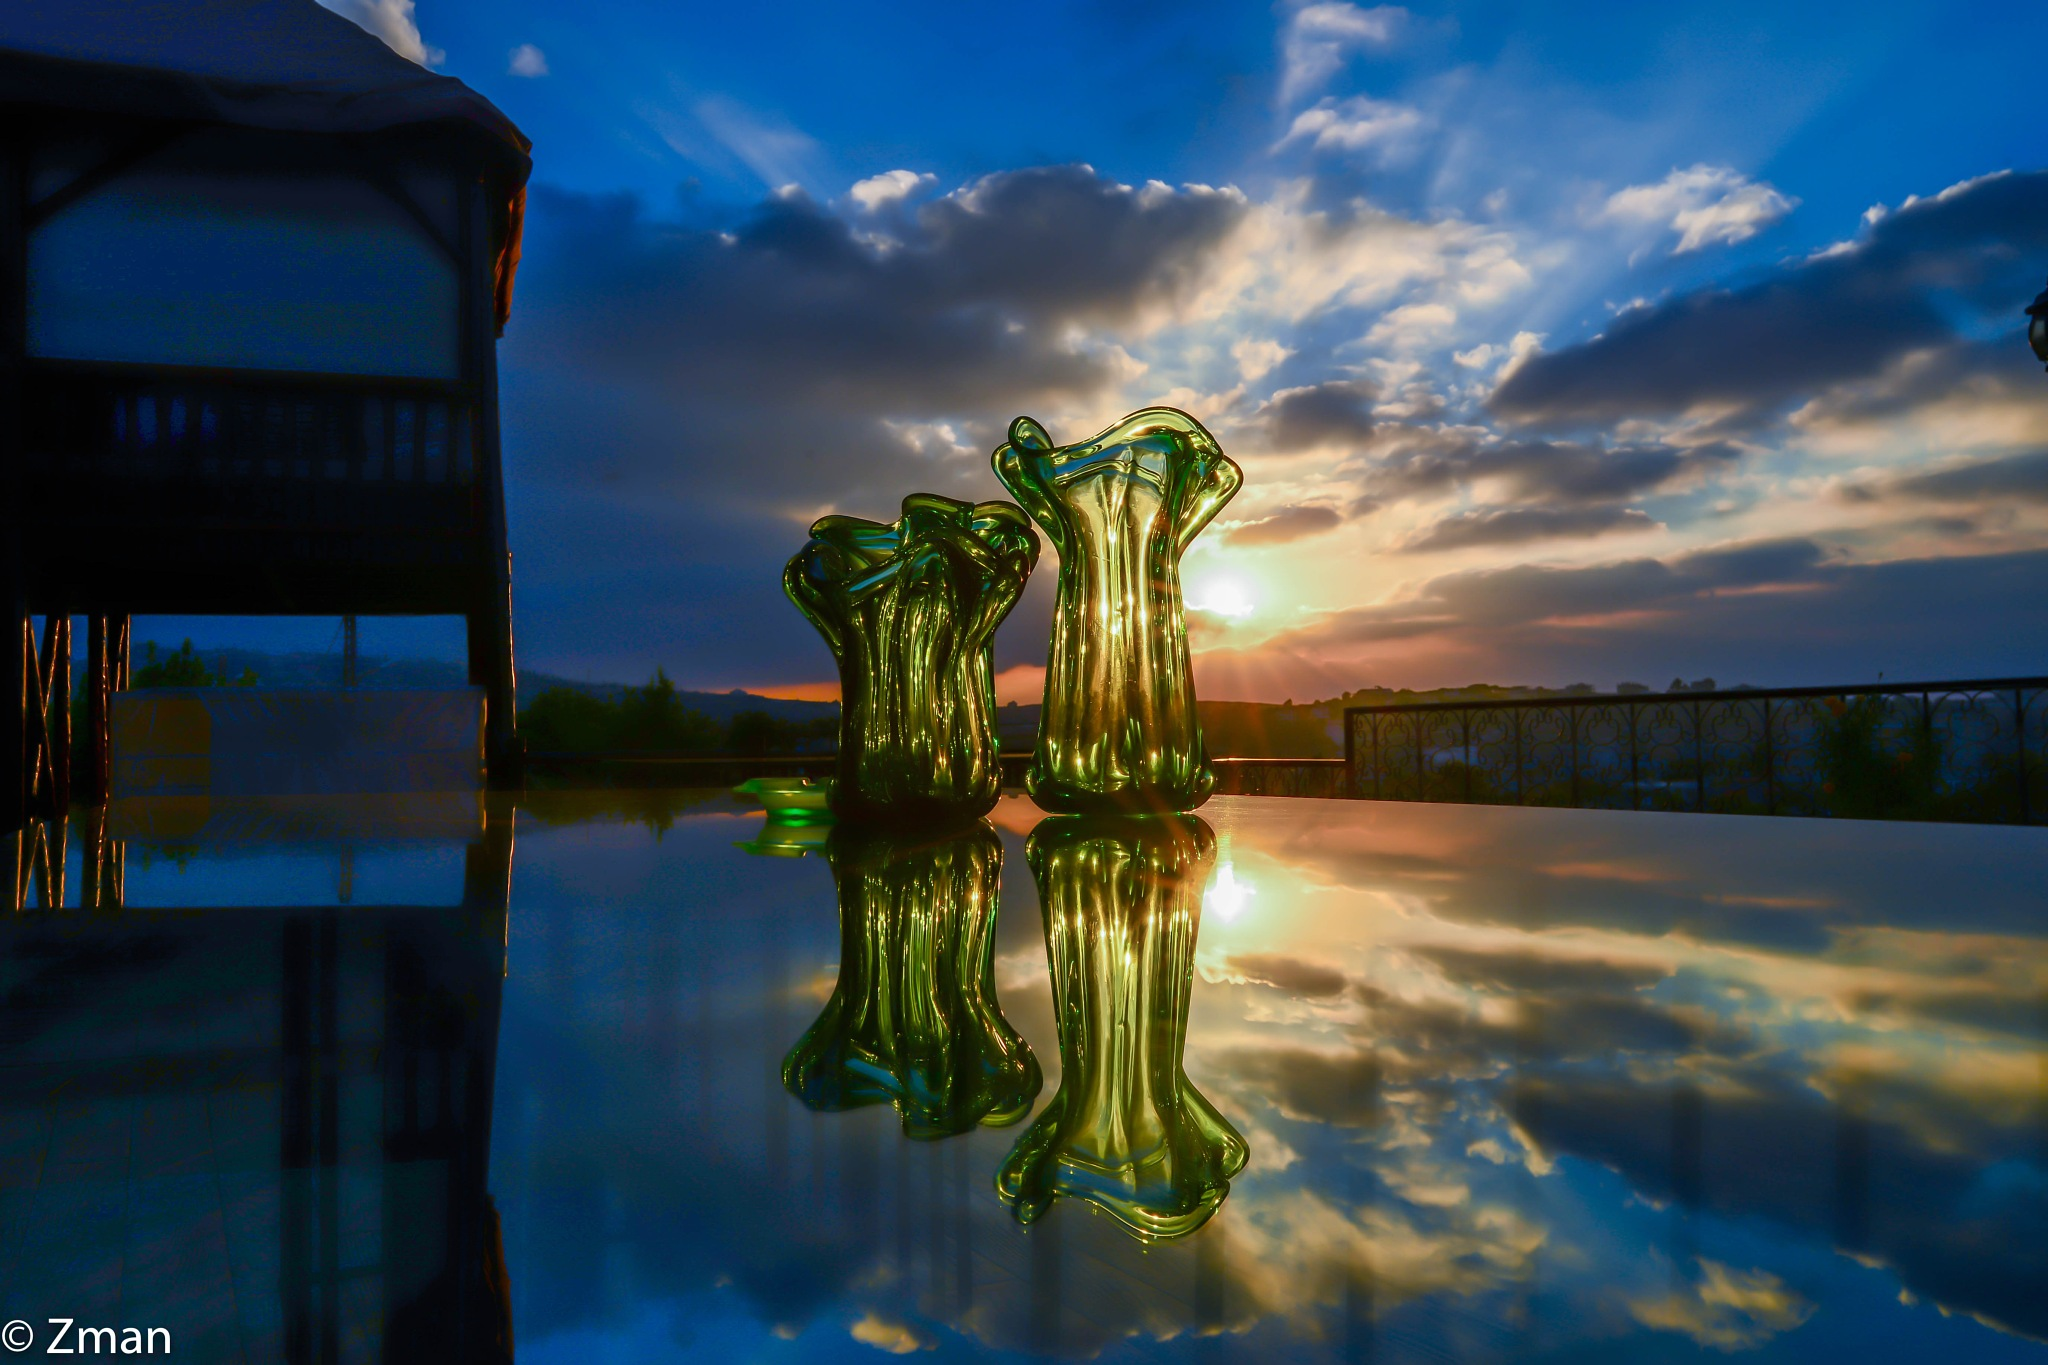 Vases at Sunset by muhammad.nasser.963